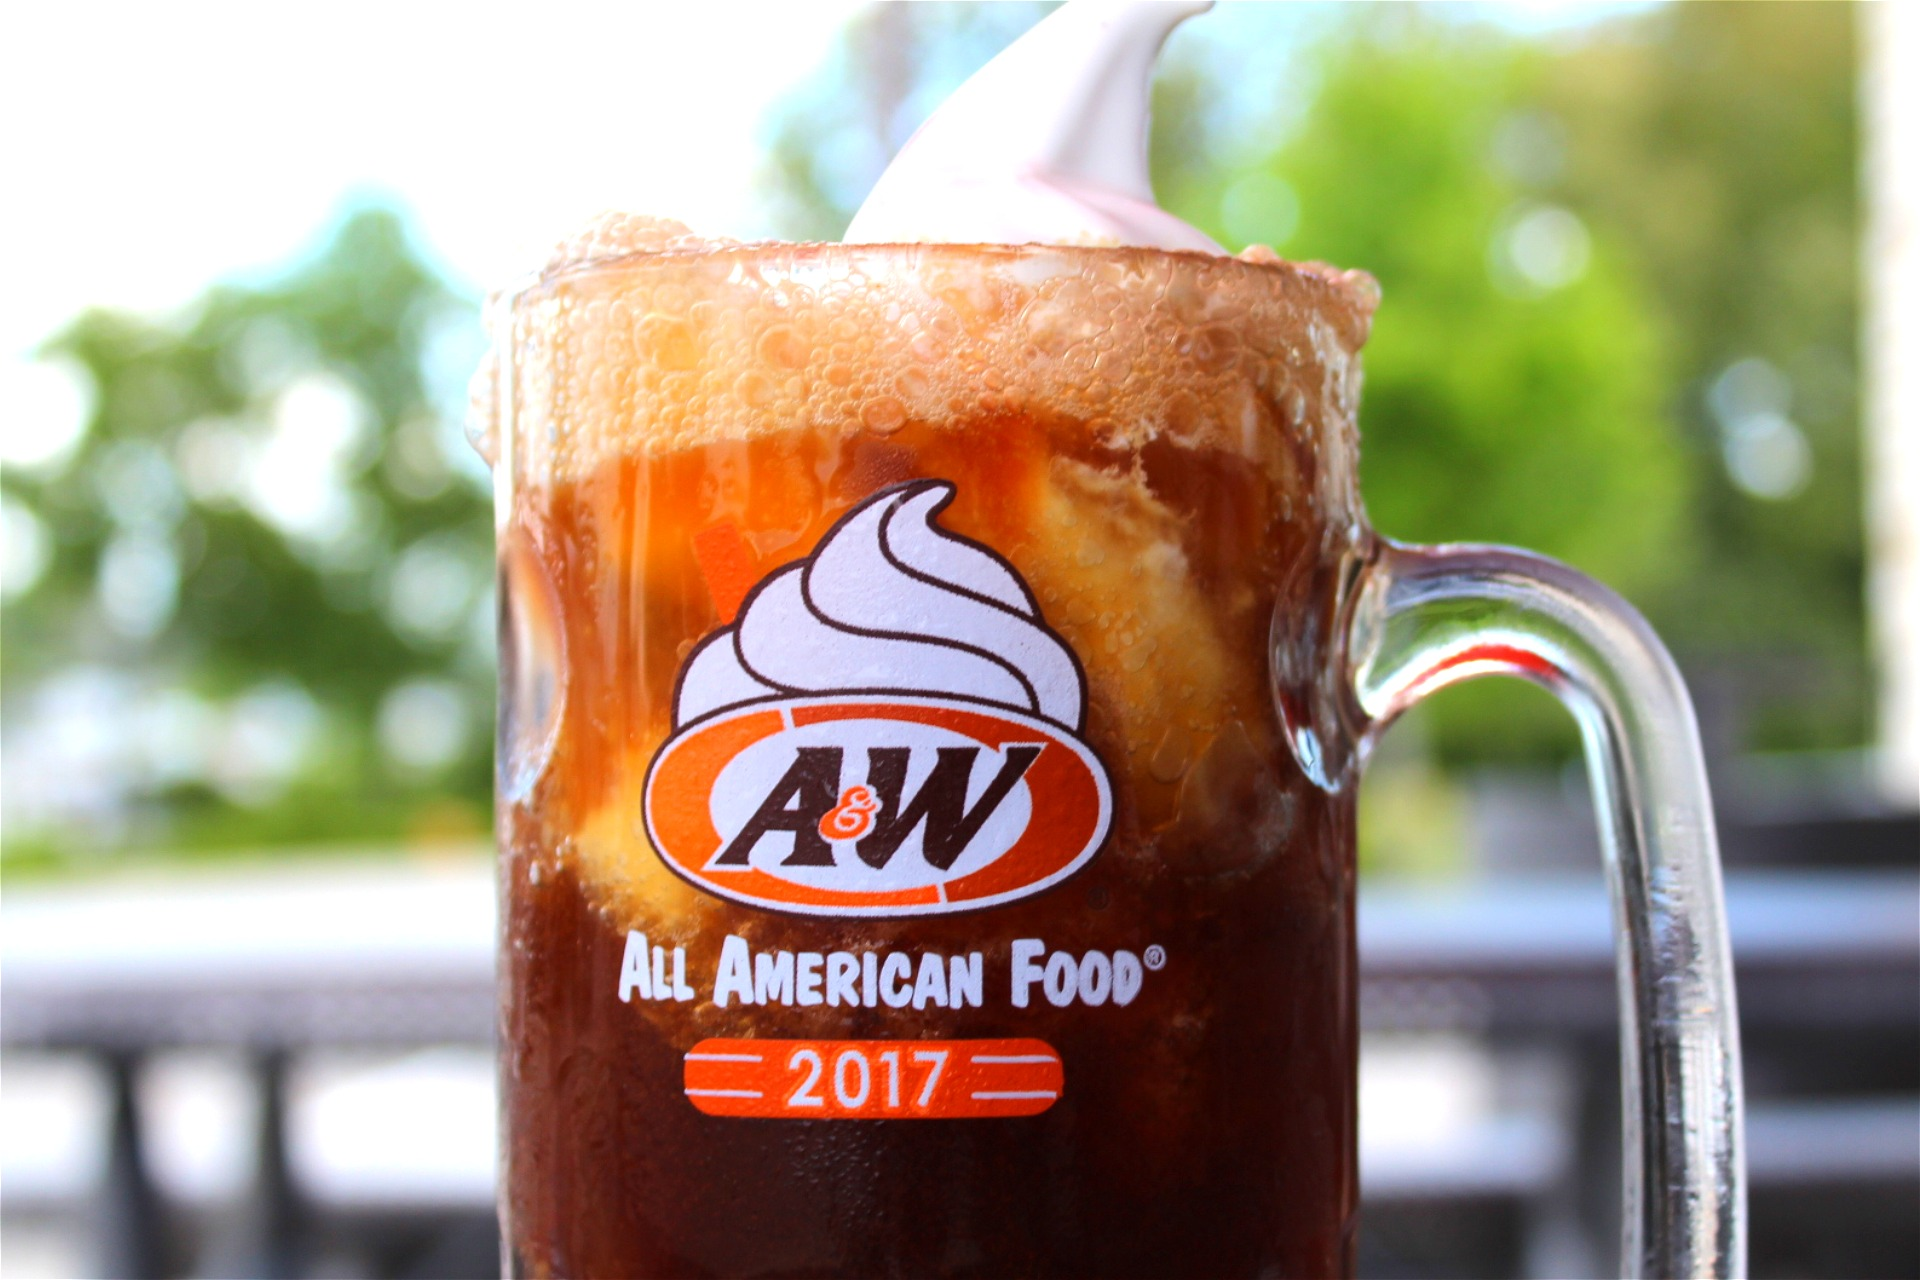 What The Letters In A&W Really Stand For